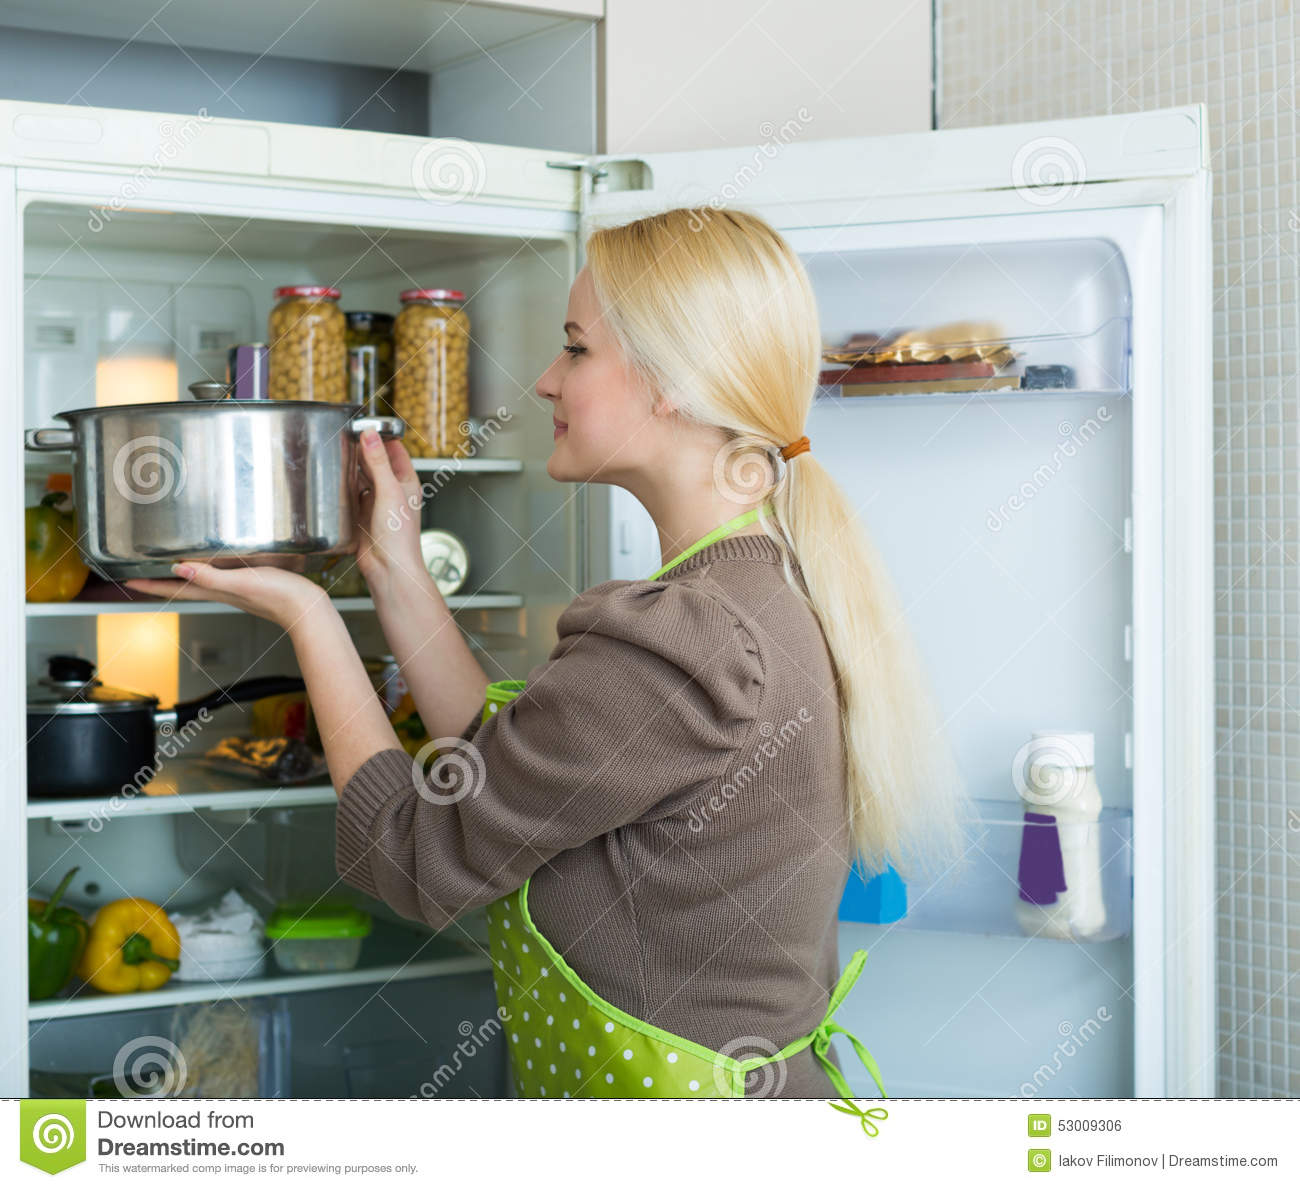 Something Blond Blue Kitchens: Girl Looking For Something In Fridge Stock Photo